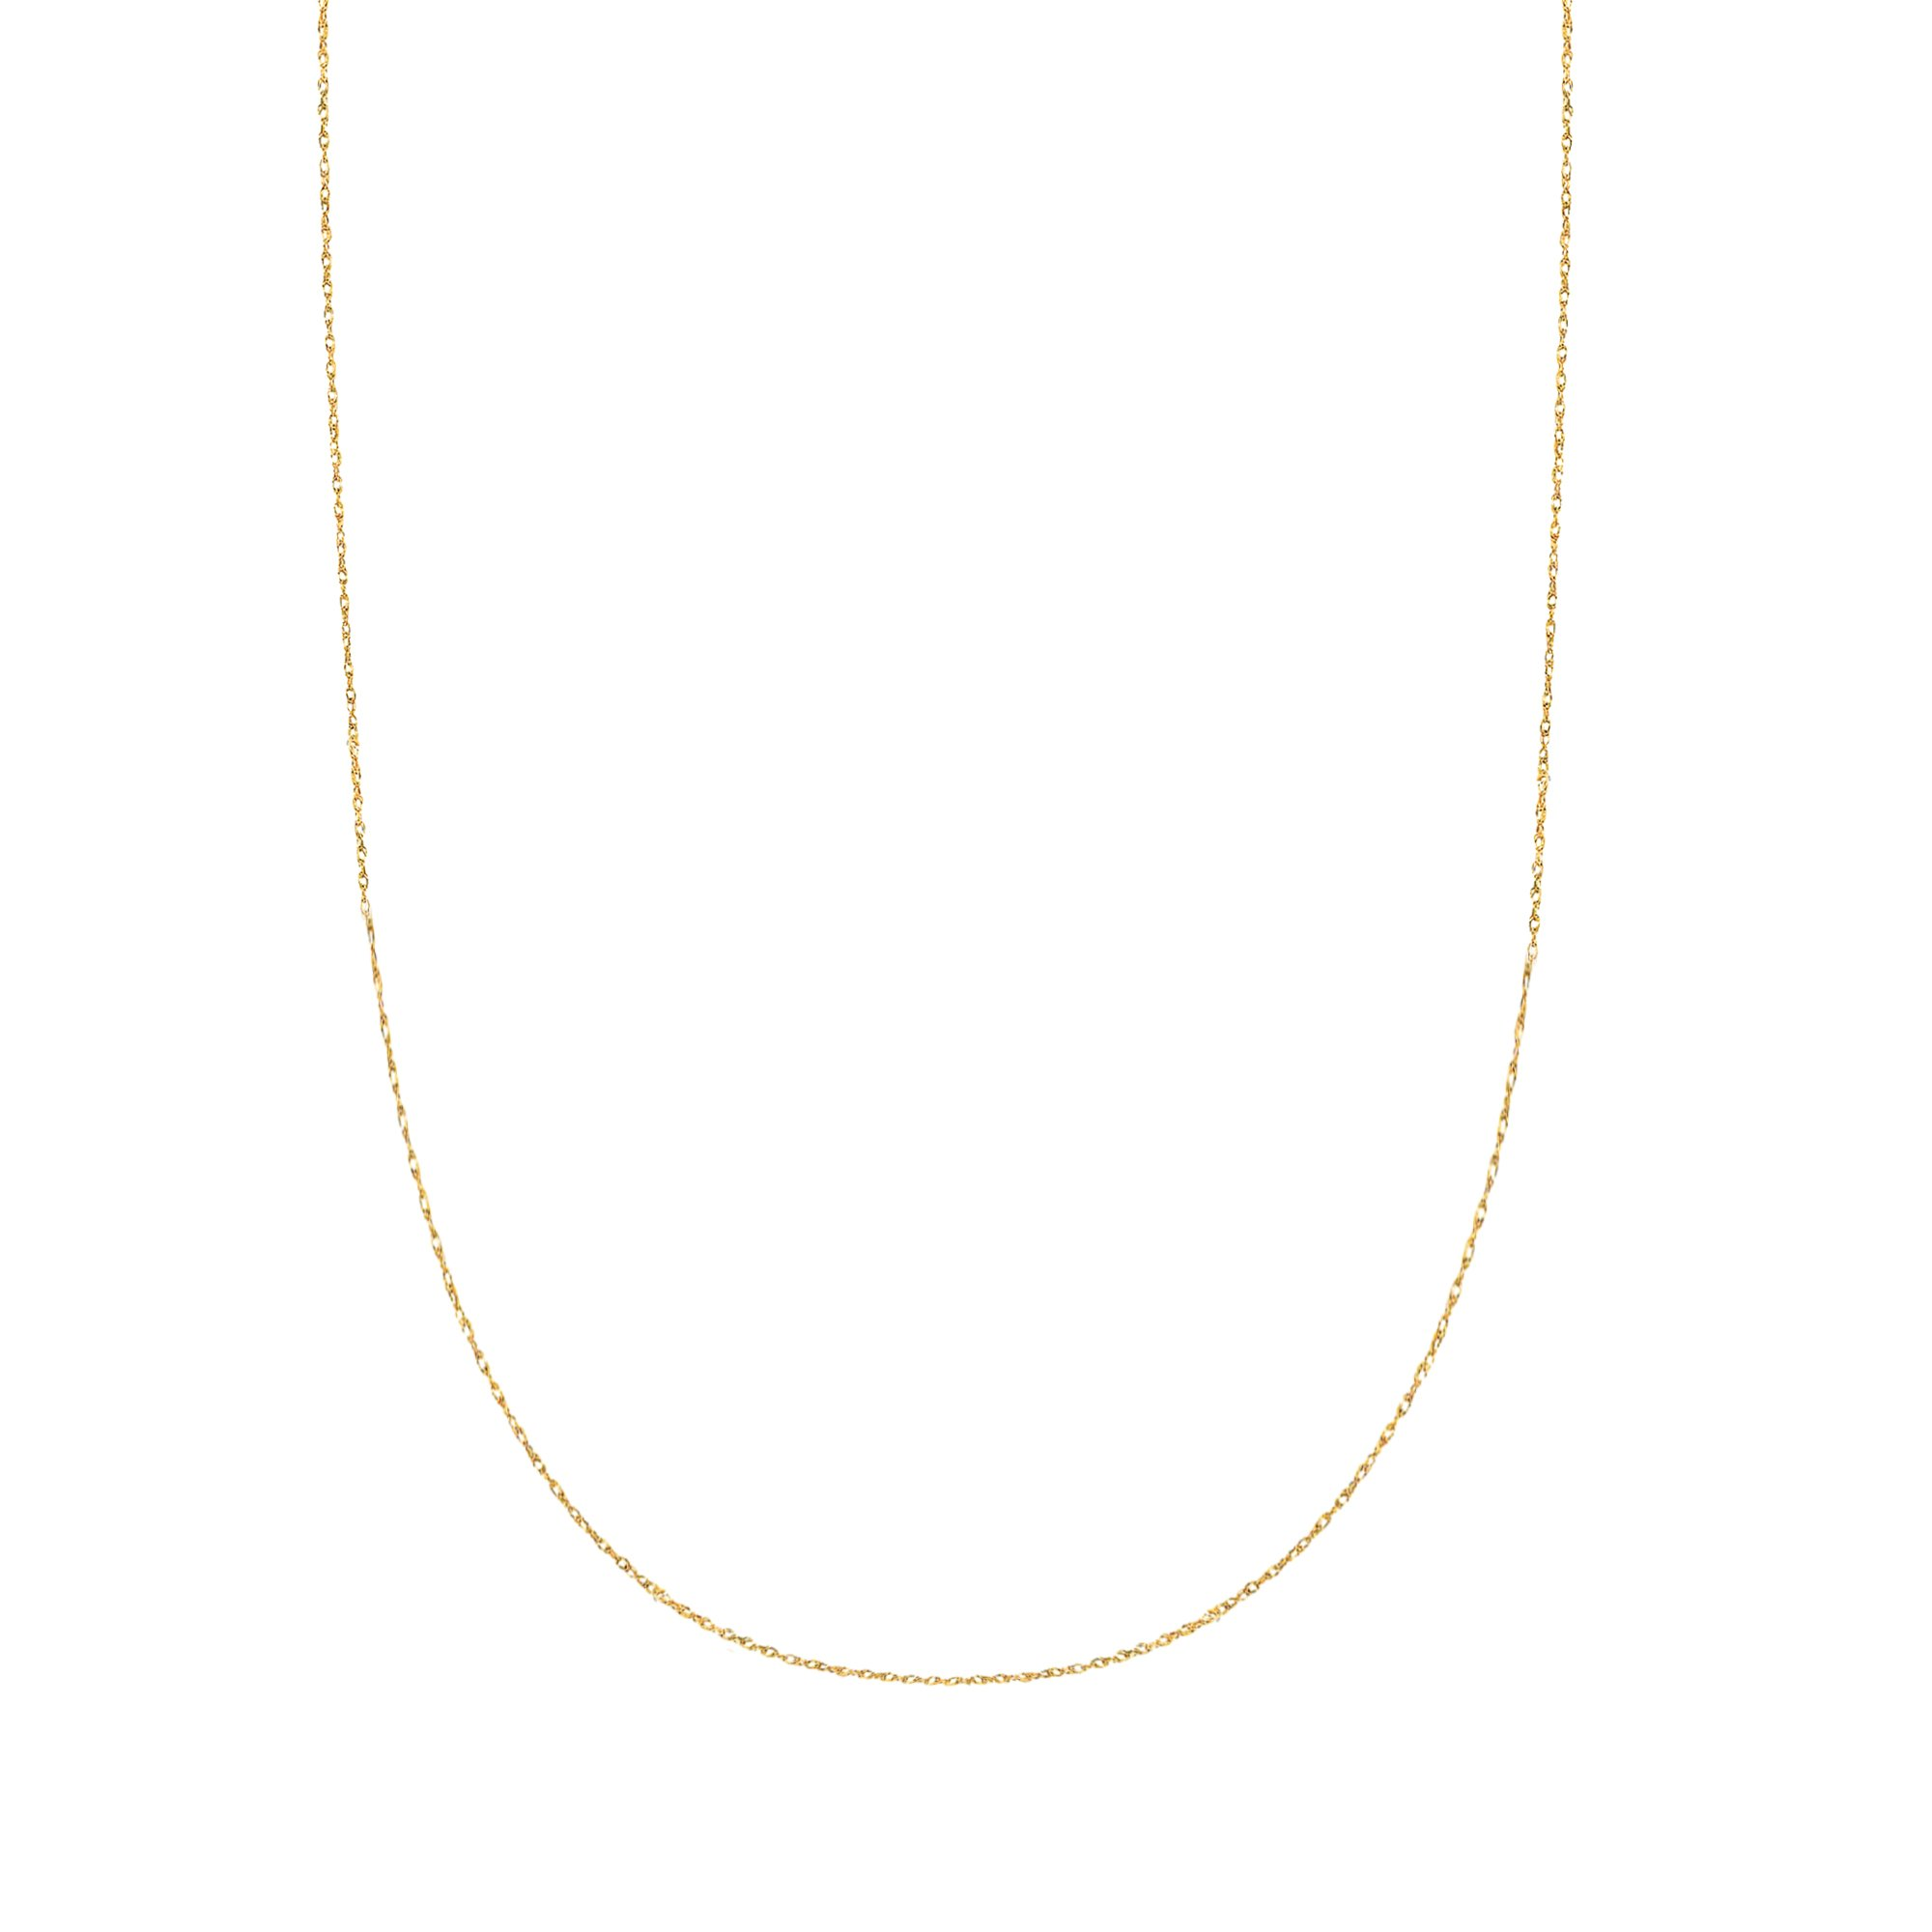 10K Solid Yellow Gold Lite Pendant Rope Chain Necklace 18 Inches